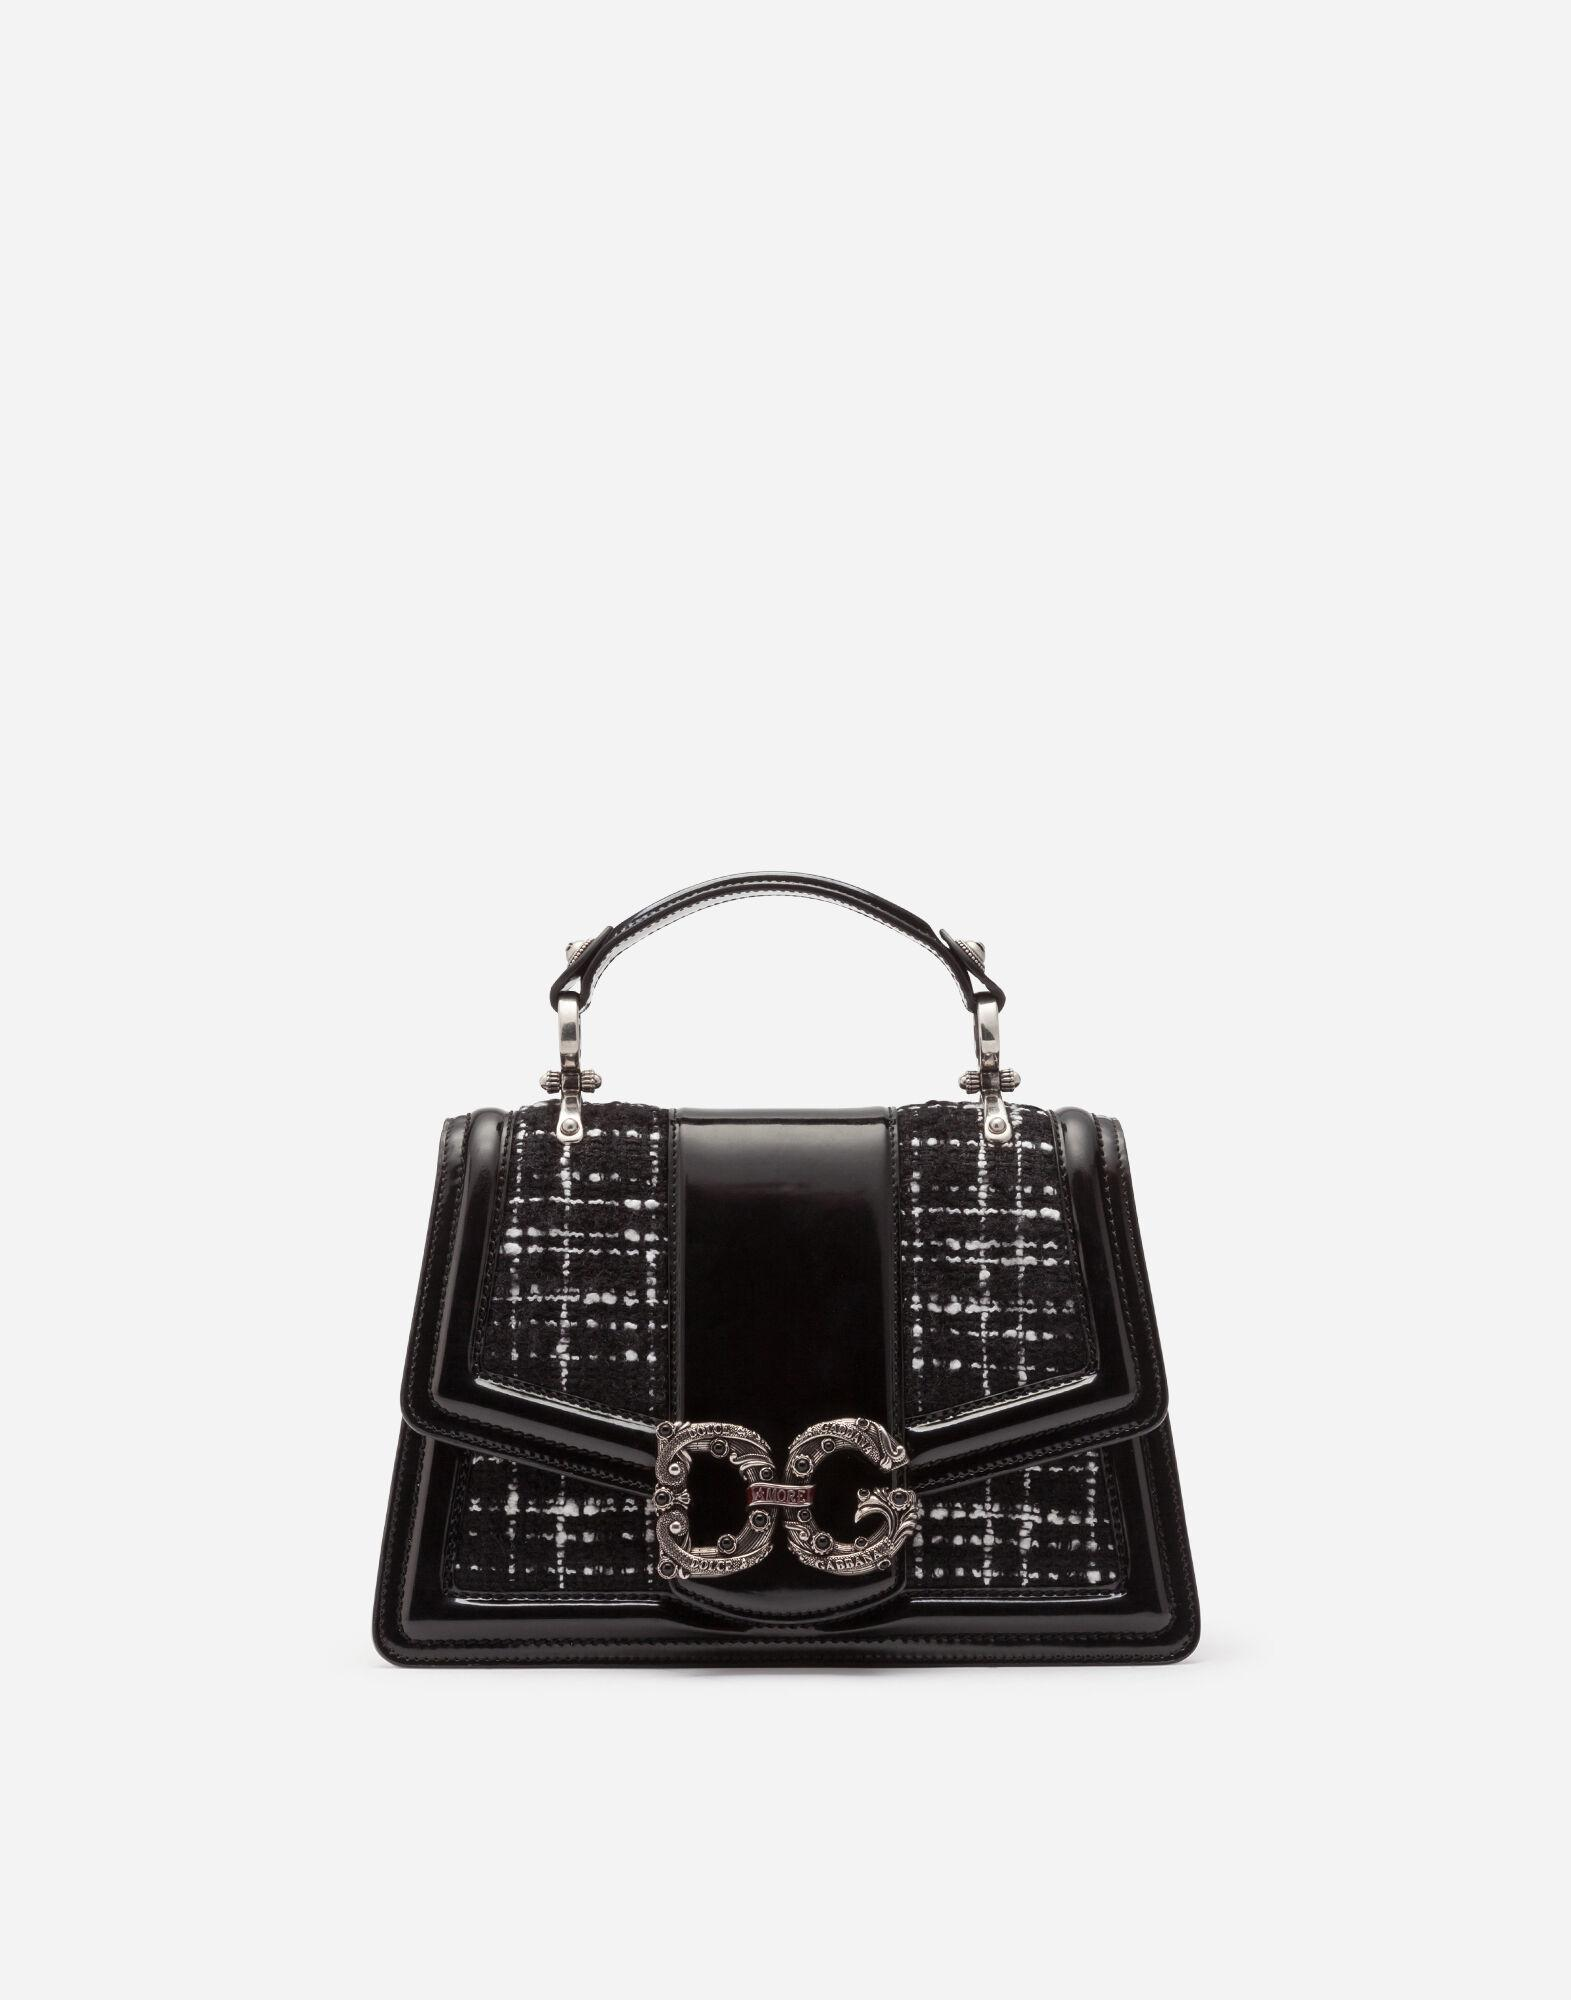 DG Amore bag in polished calfskin and tweed